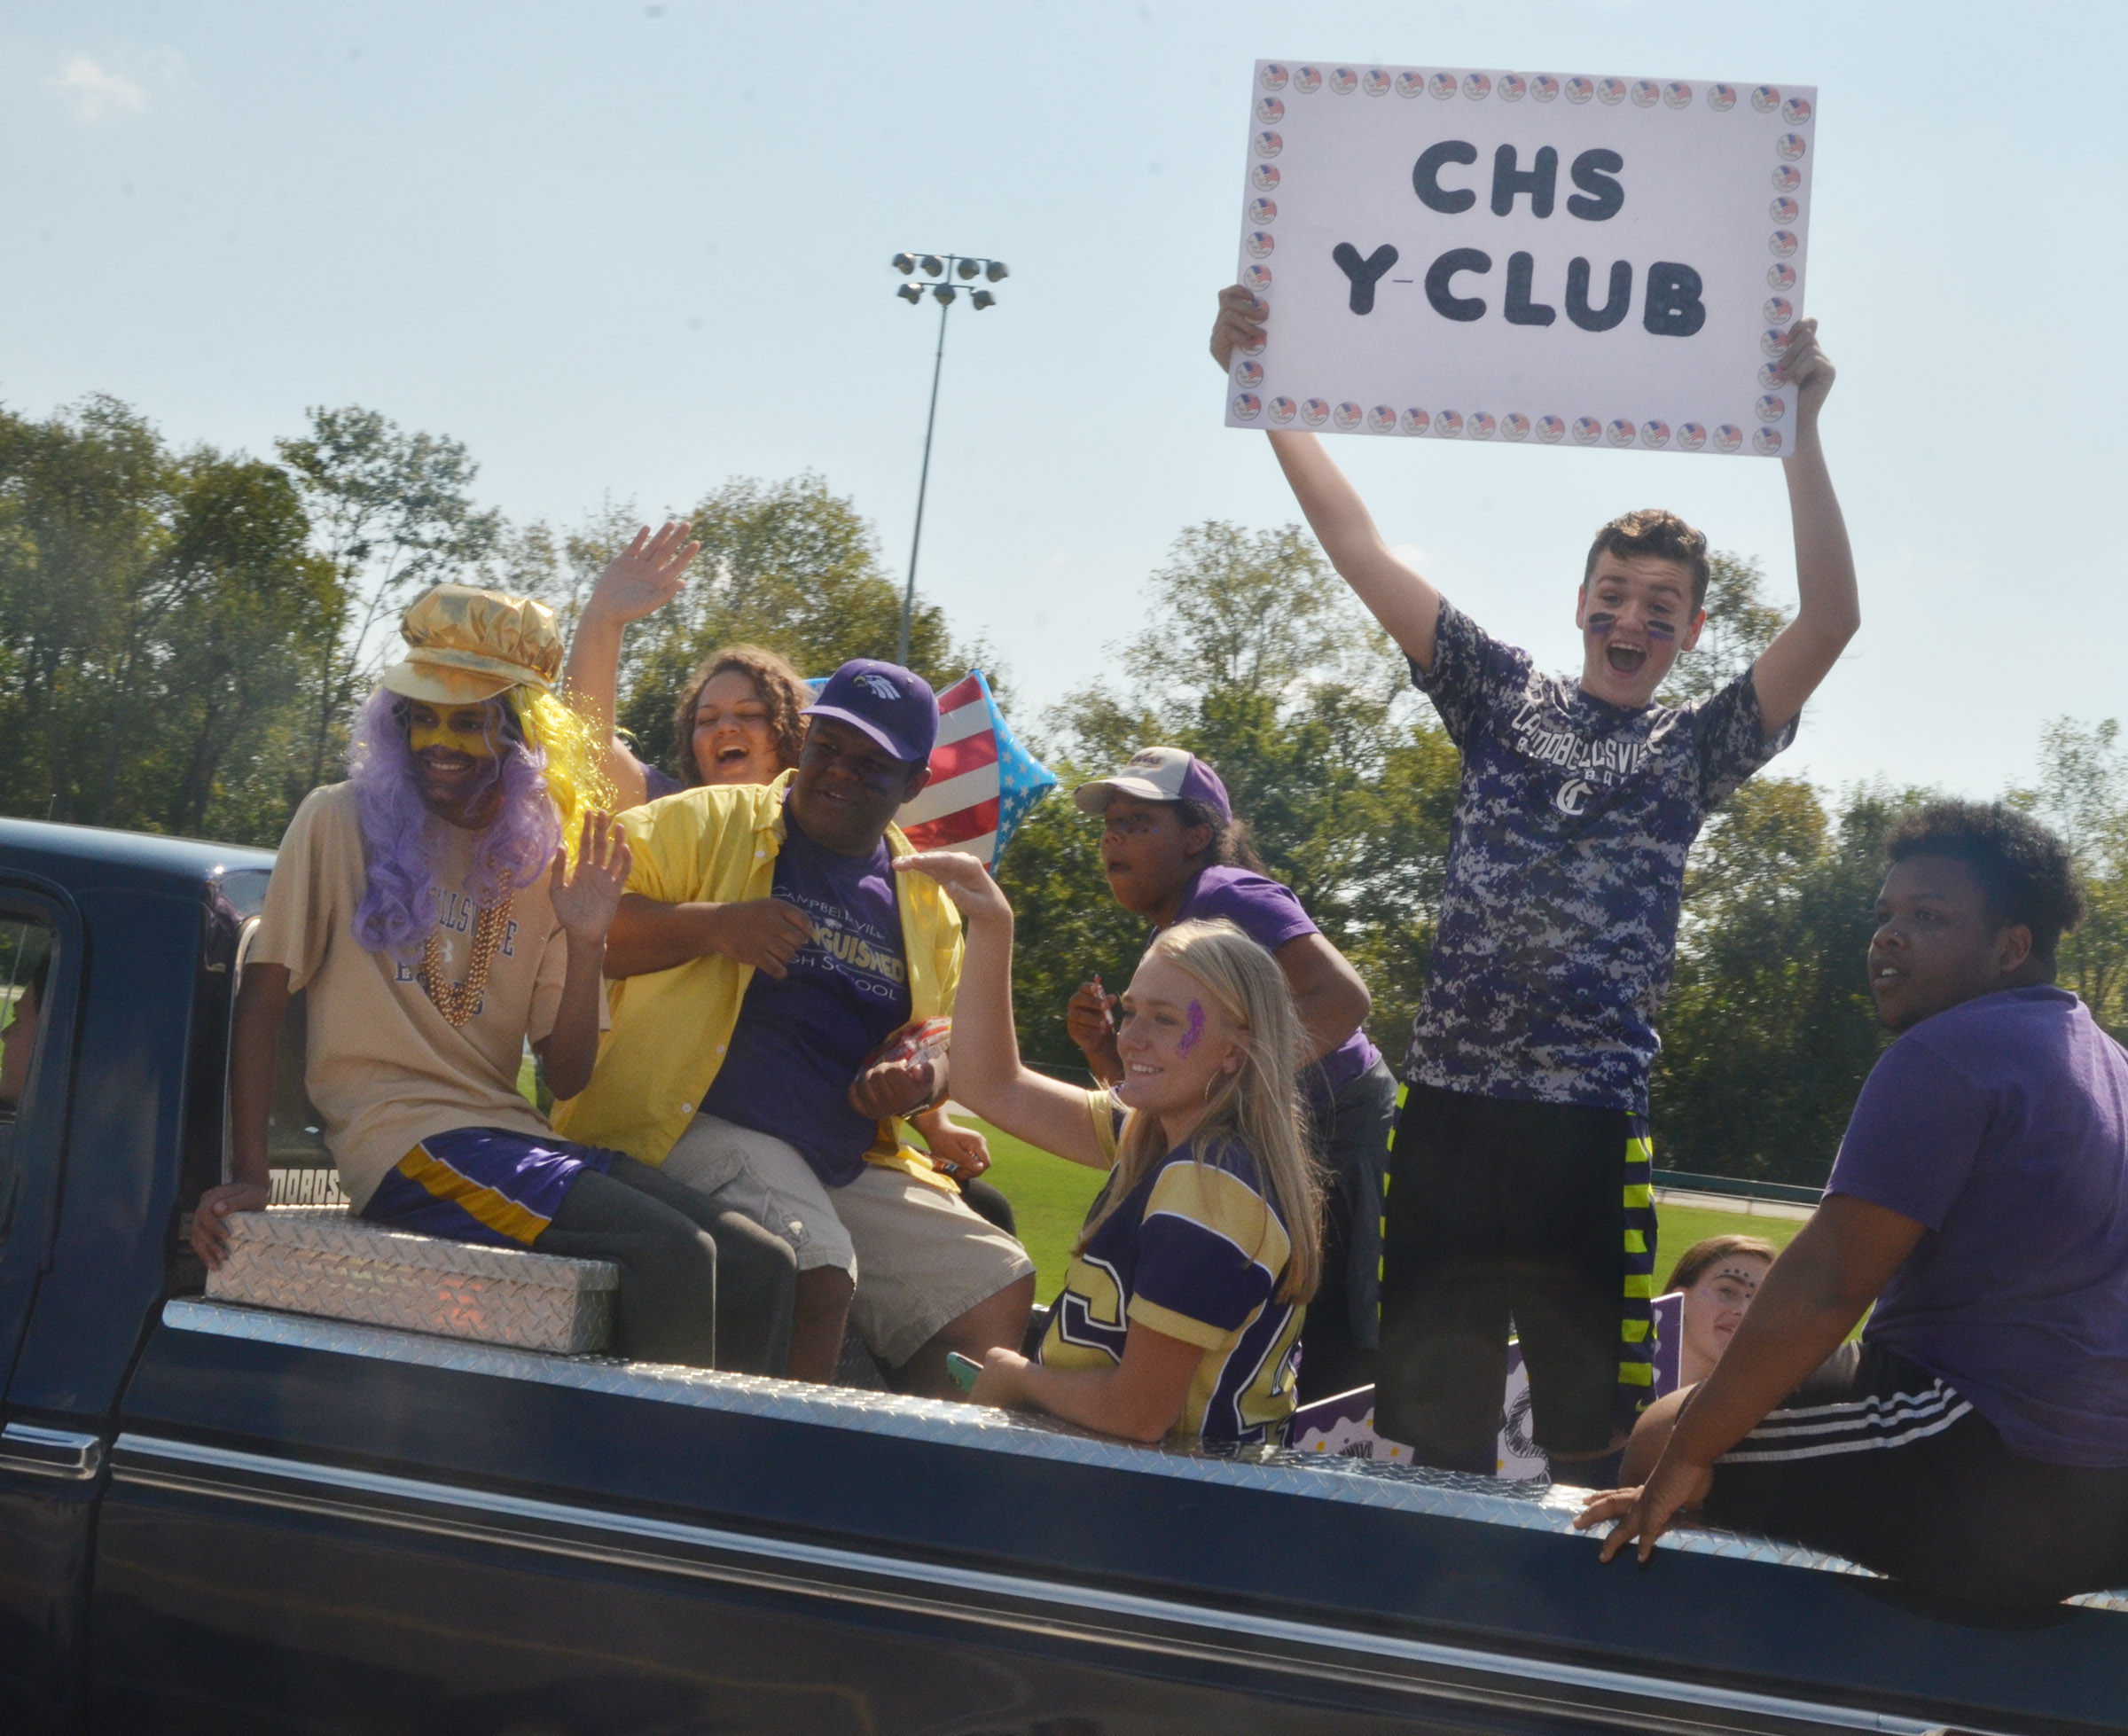 CHS Y-Club members ride in the parade.